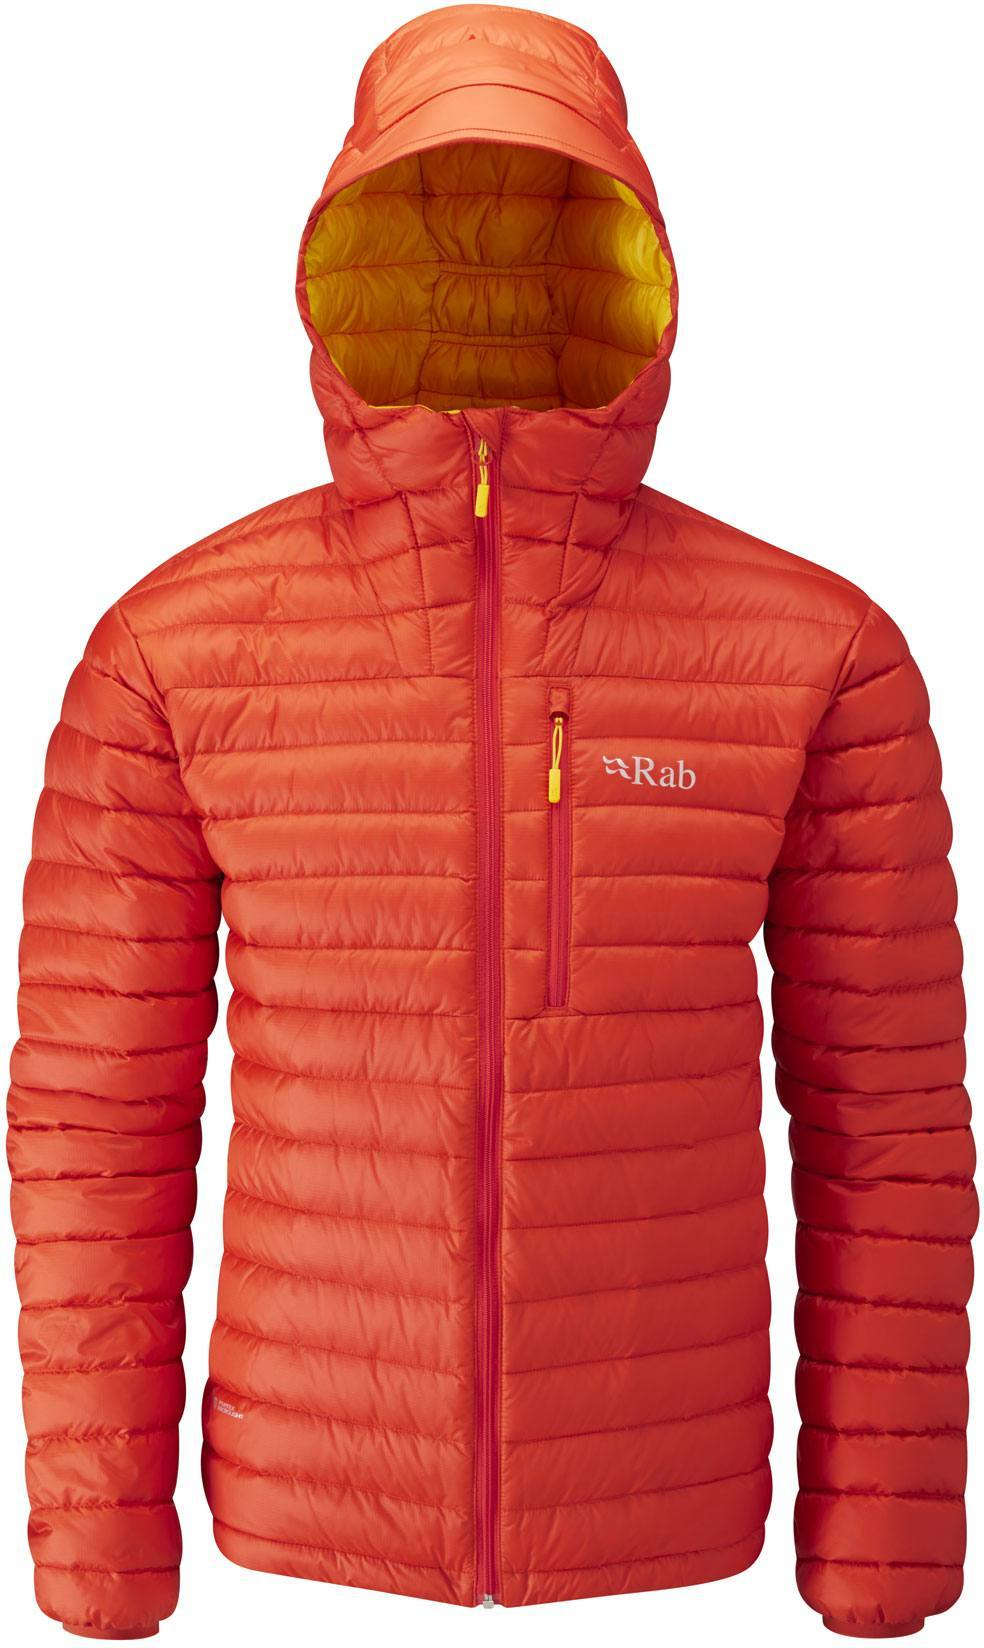 Rab Microlight Alpine Jacket 2017 Scandinavian Outdoor